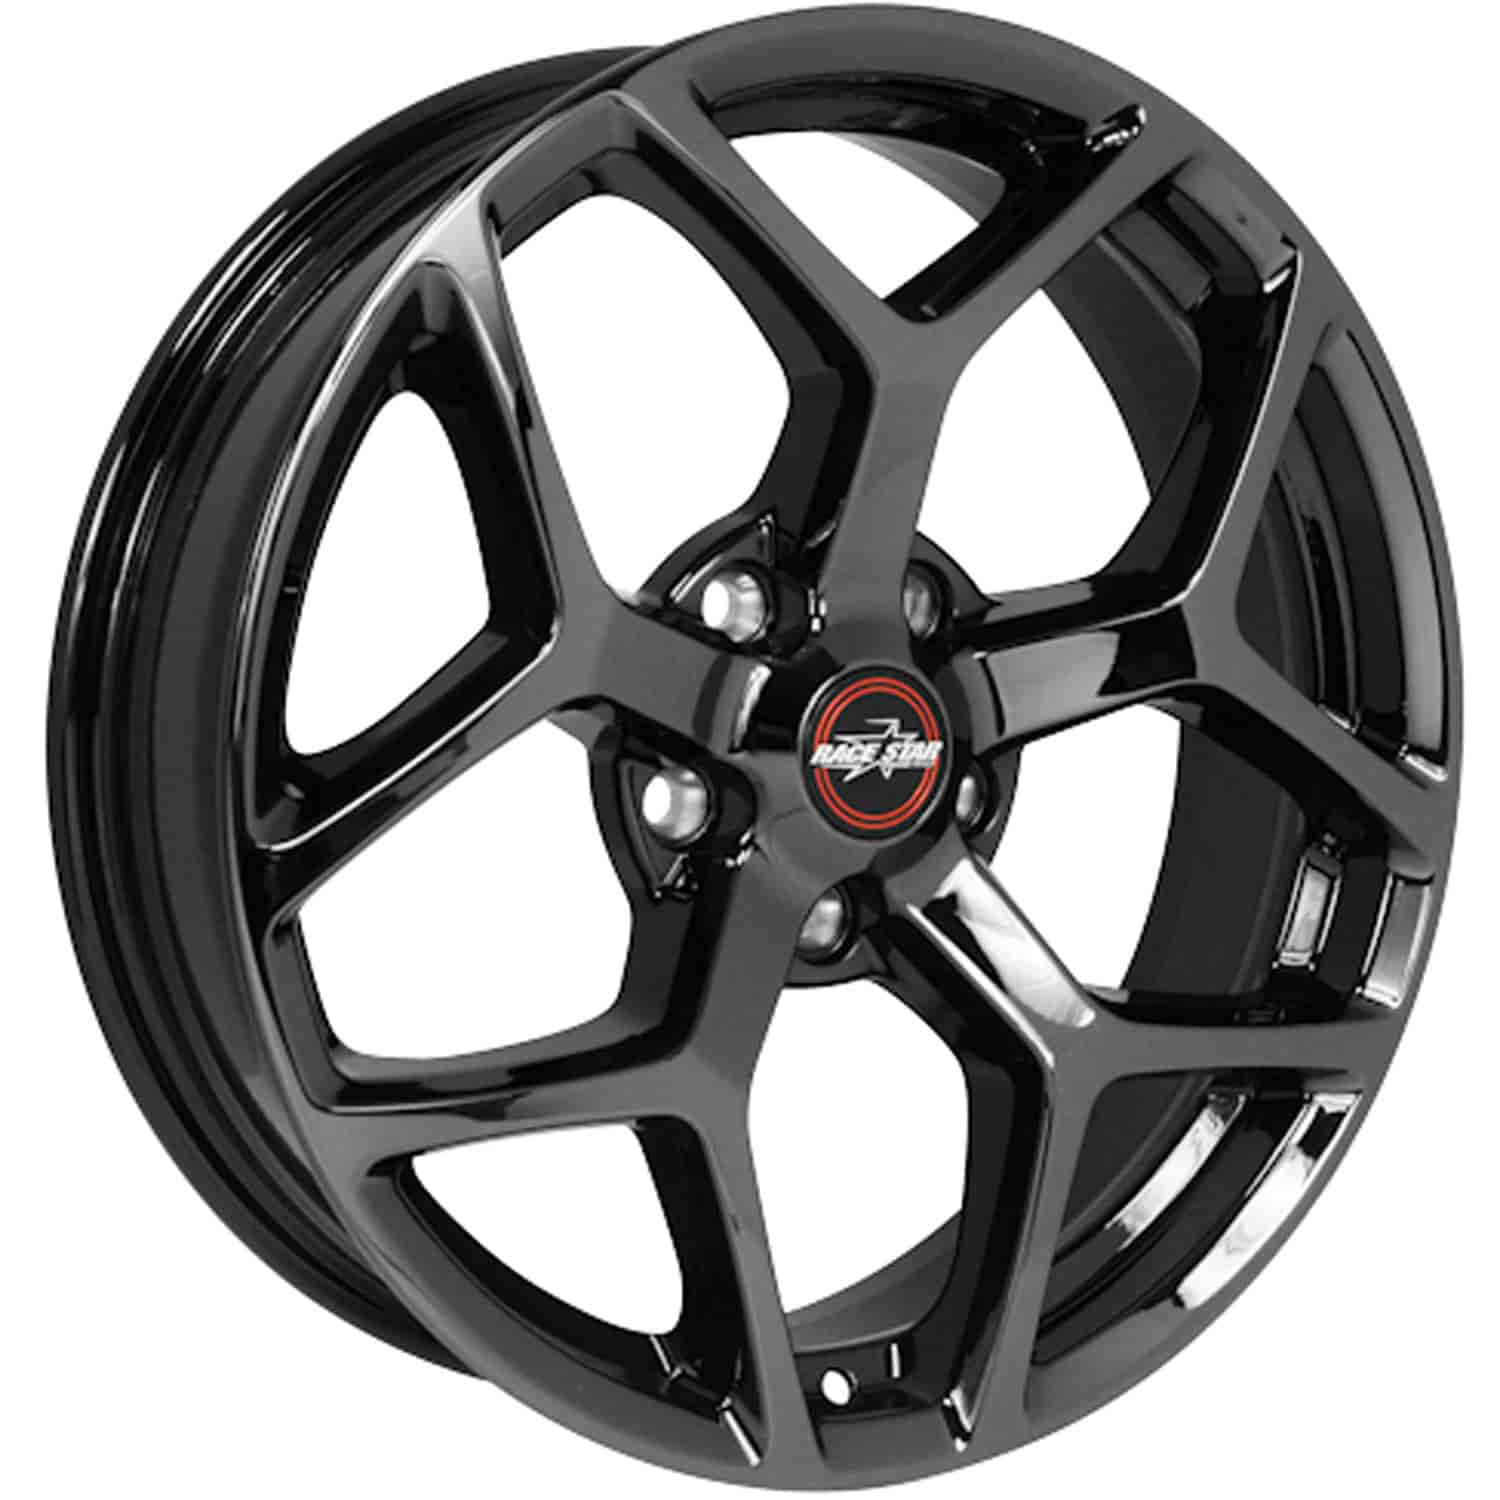 Race Star Wheels 95-850445BC